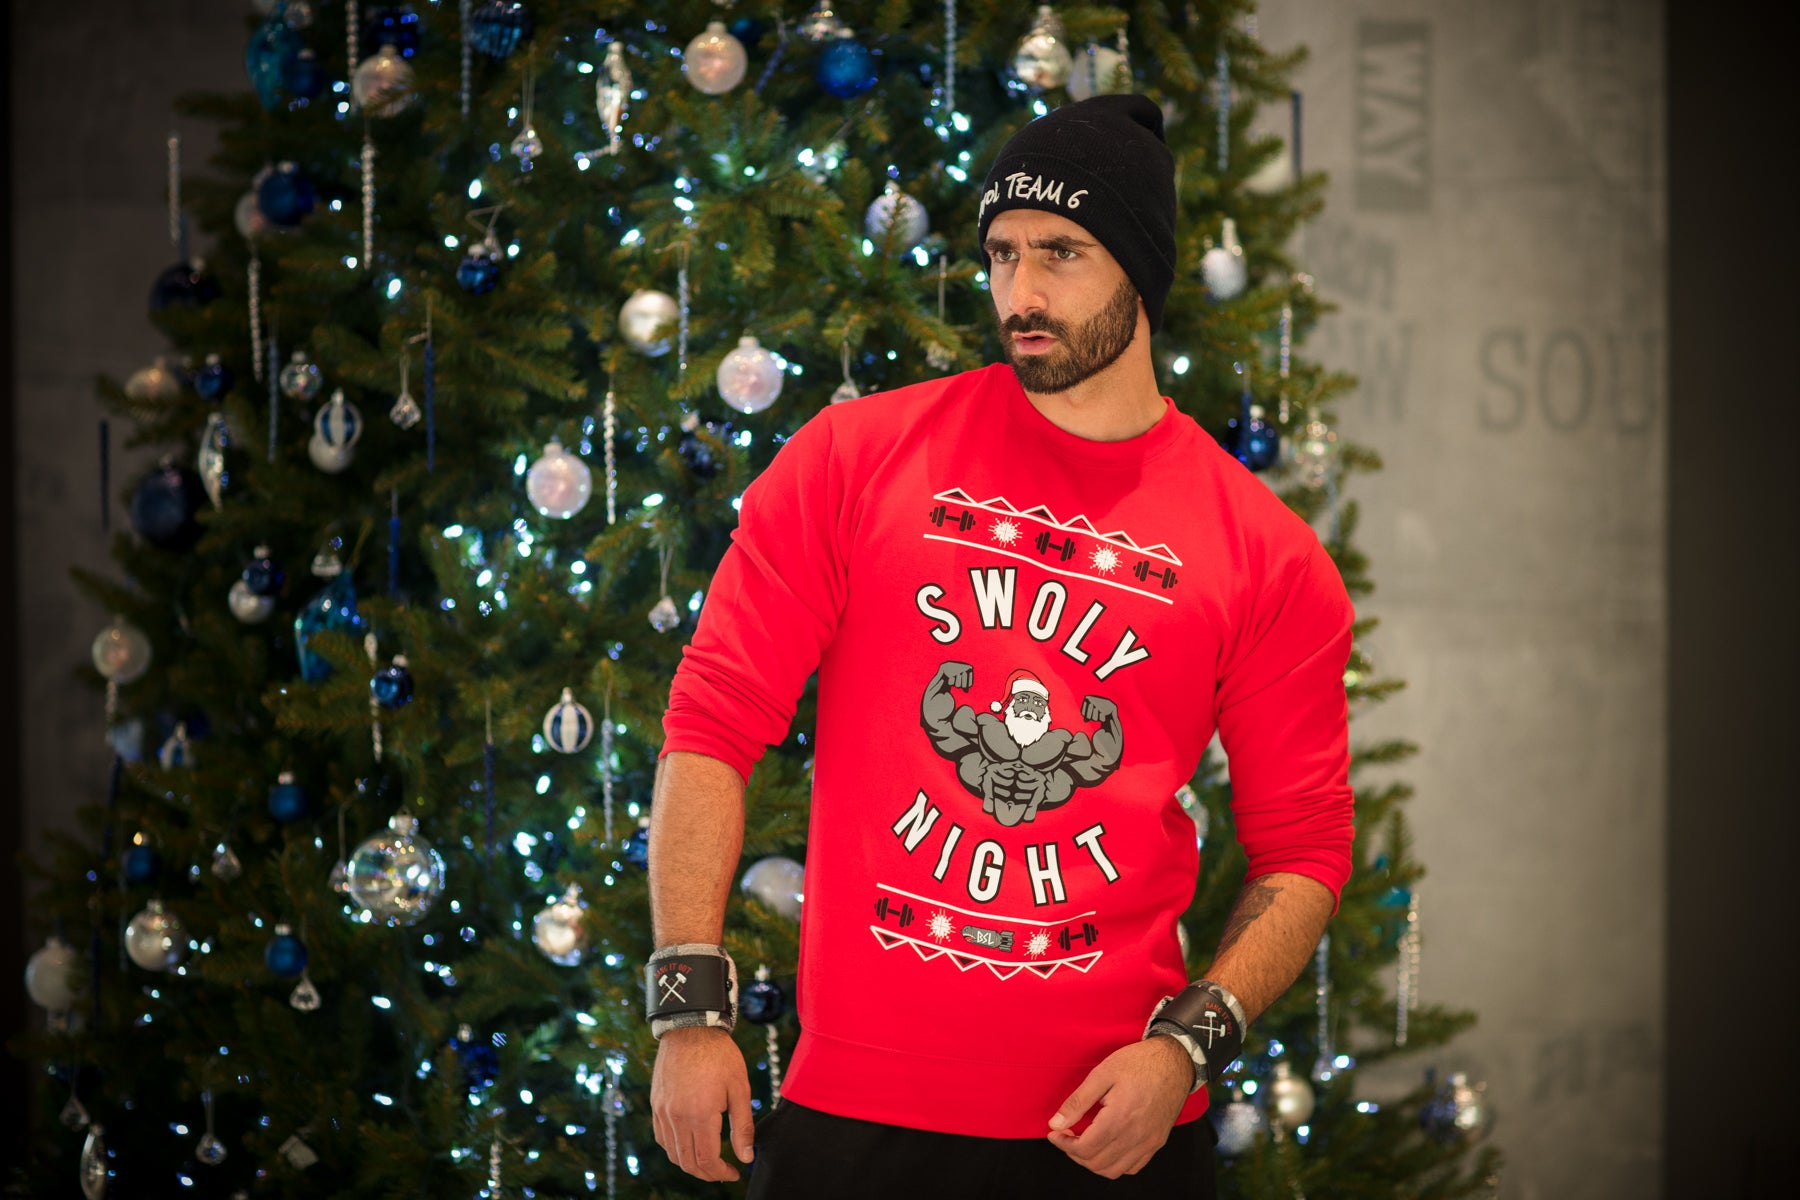 BSL Swoly Night Christmas Sweater WITH Sleeves - Red